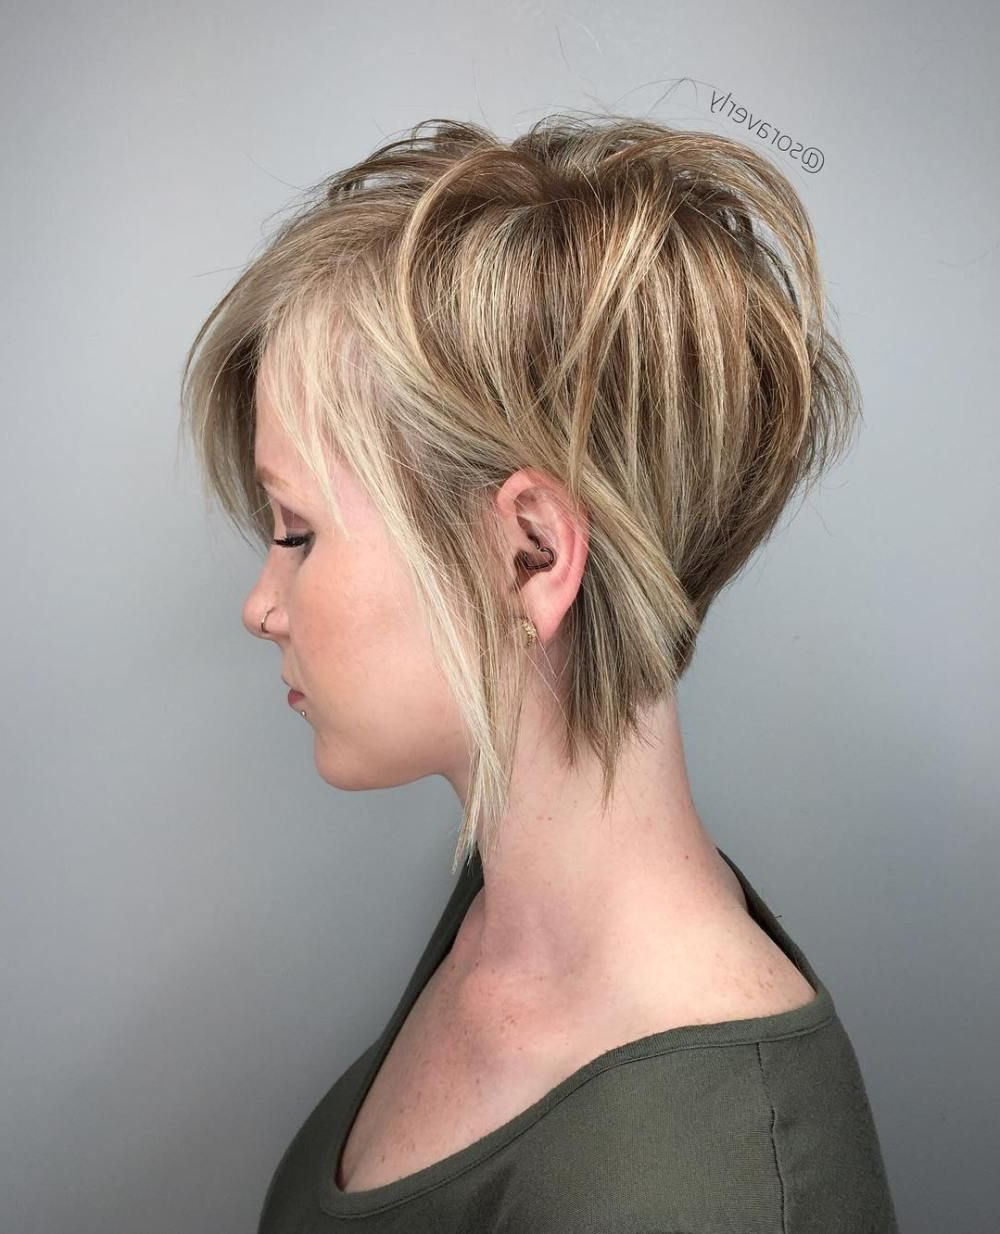 70 Cute And Easy To Style Short Layered Hairstyles | Blonde Pixie With Regard To Highlighted Pixie Bob Hairstyles With Long Bangs (View 9 of 20)